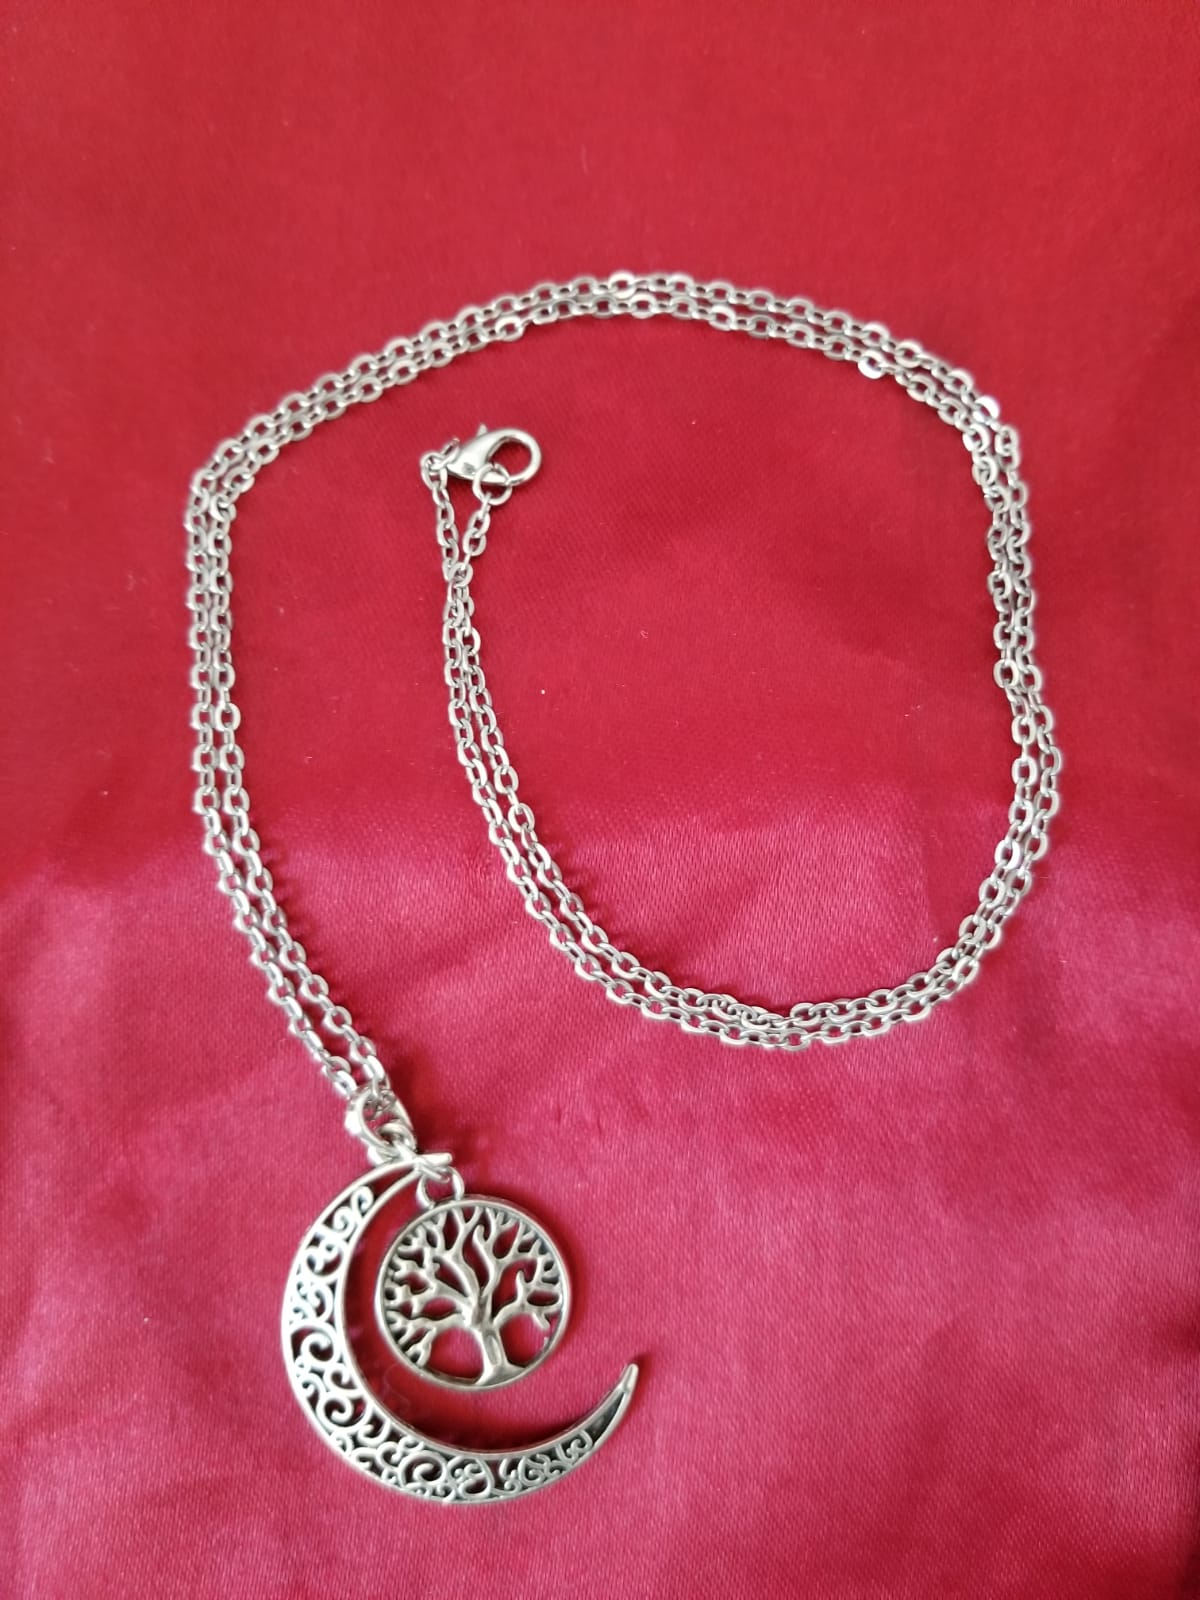 Sterling Silver Crescent Moon Necklace with Tree of Life or Lotus Pendant